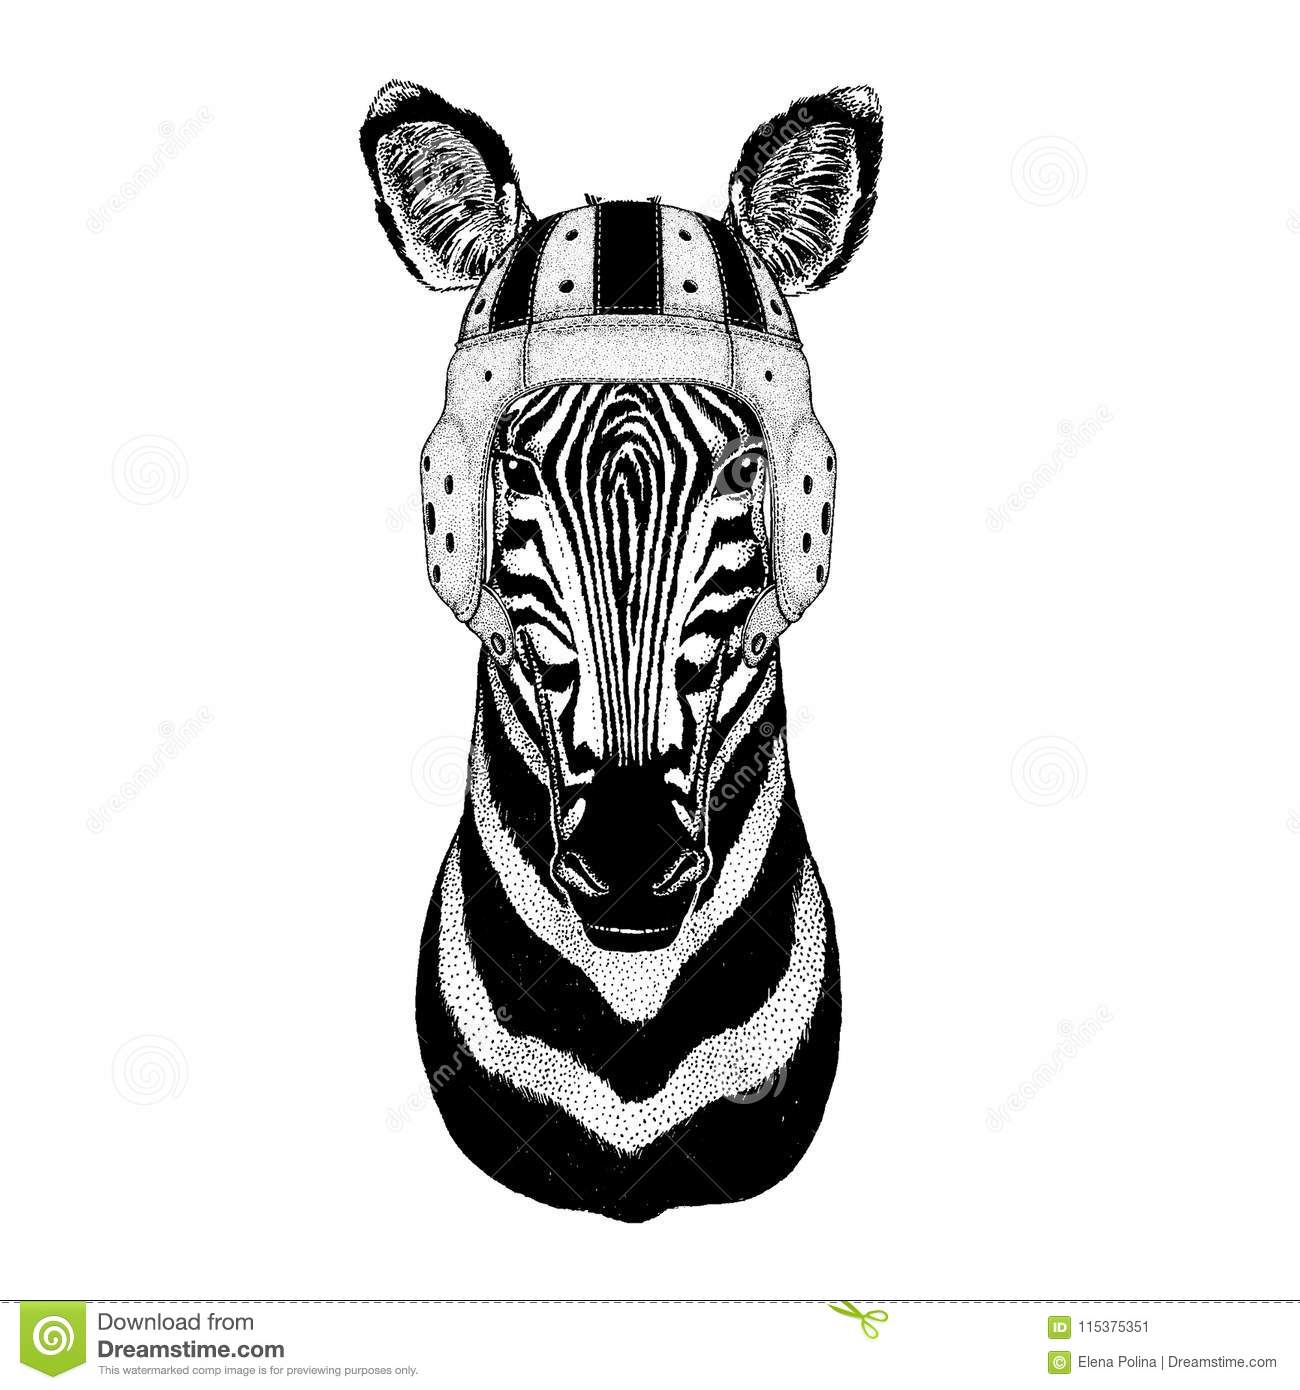 45a691df145f3 Cool animal wearing rugby helmet Extreme sport game Zebra Horse Hand drawn  illustration for tattoo